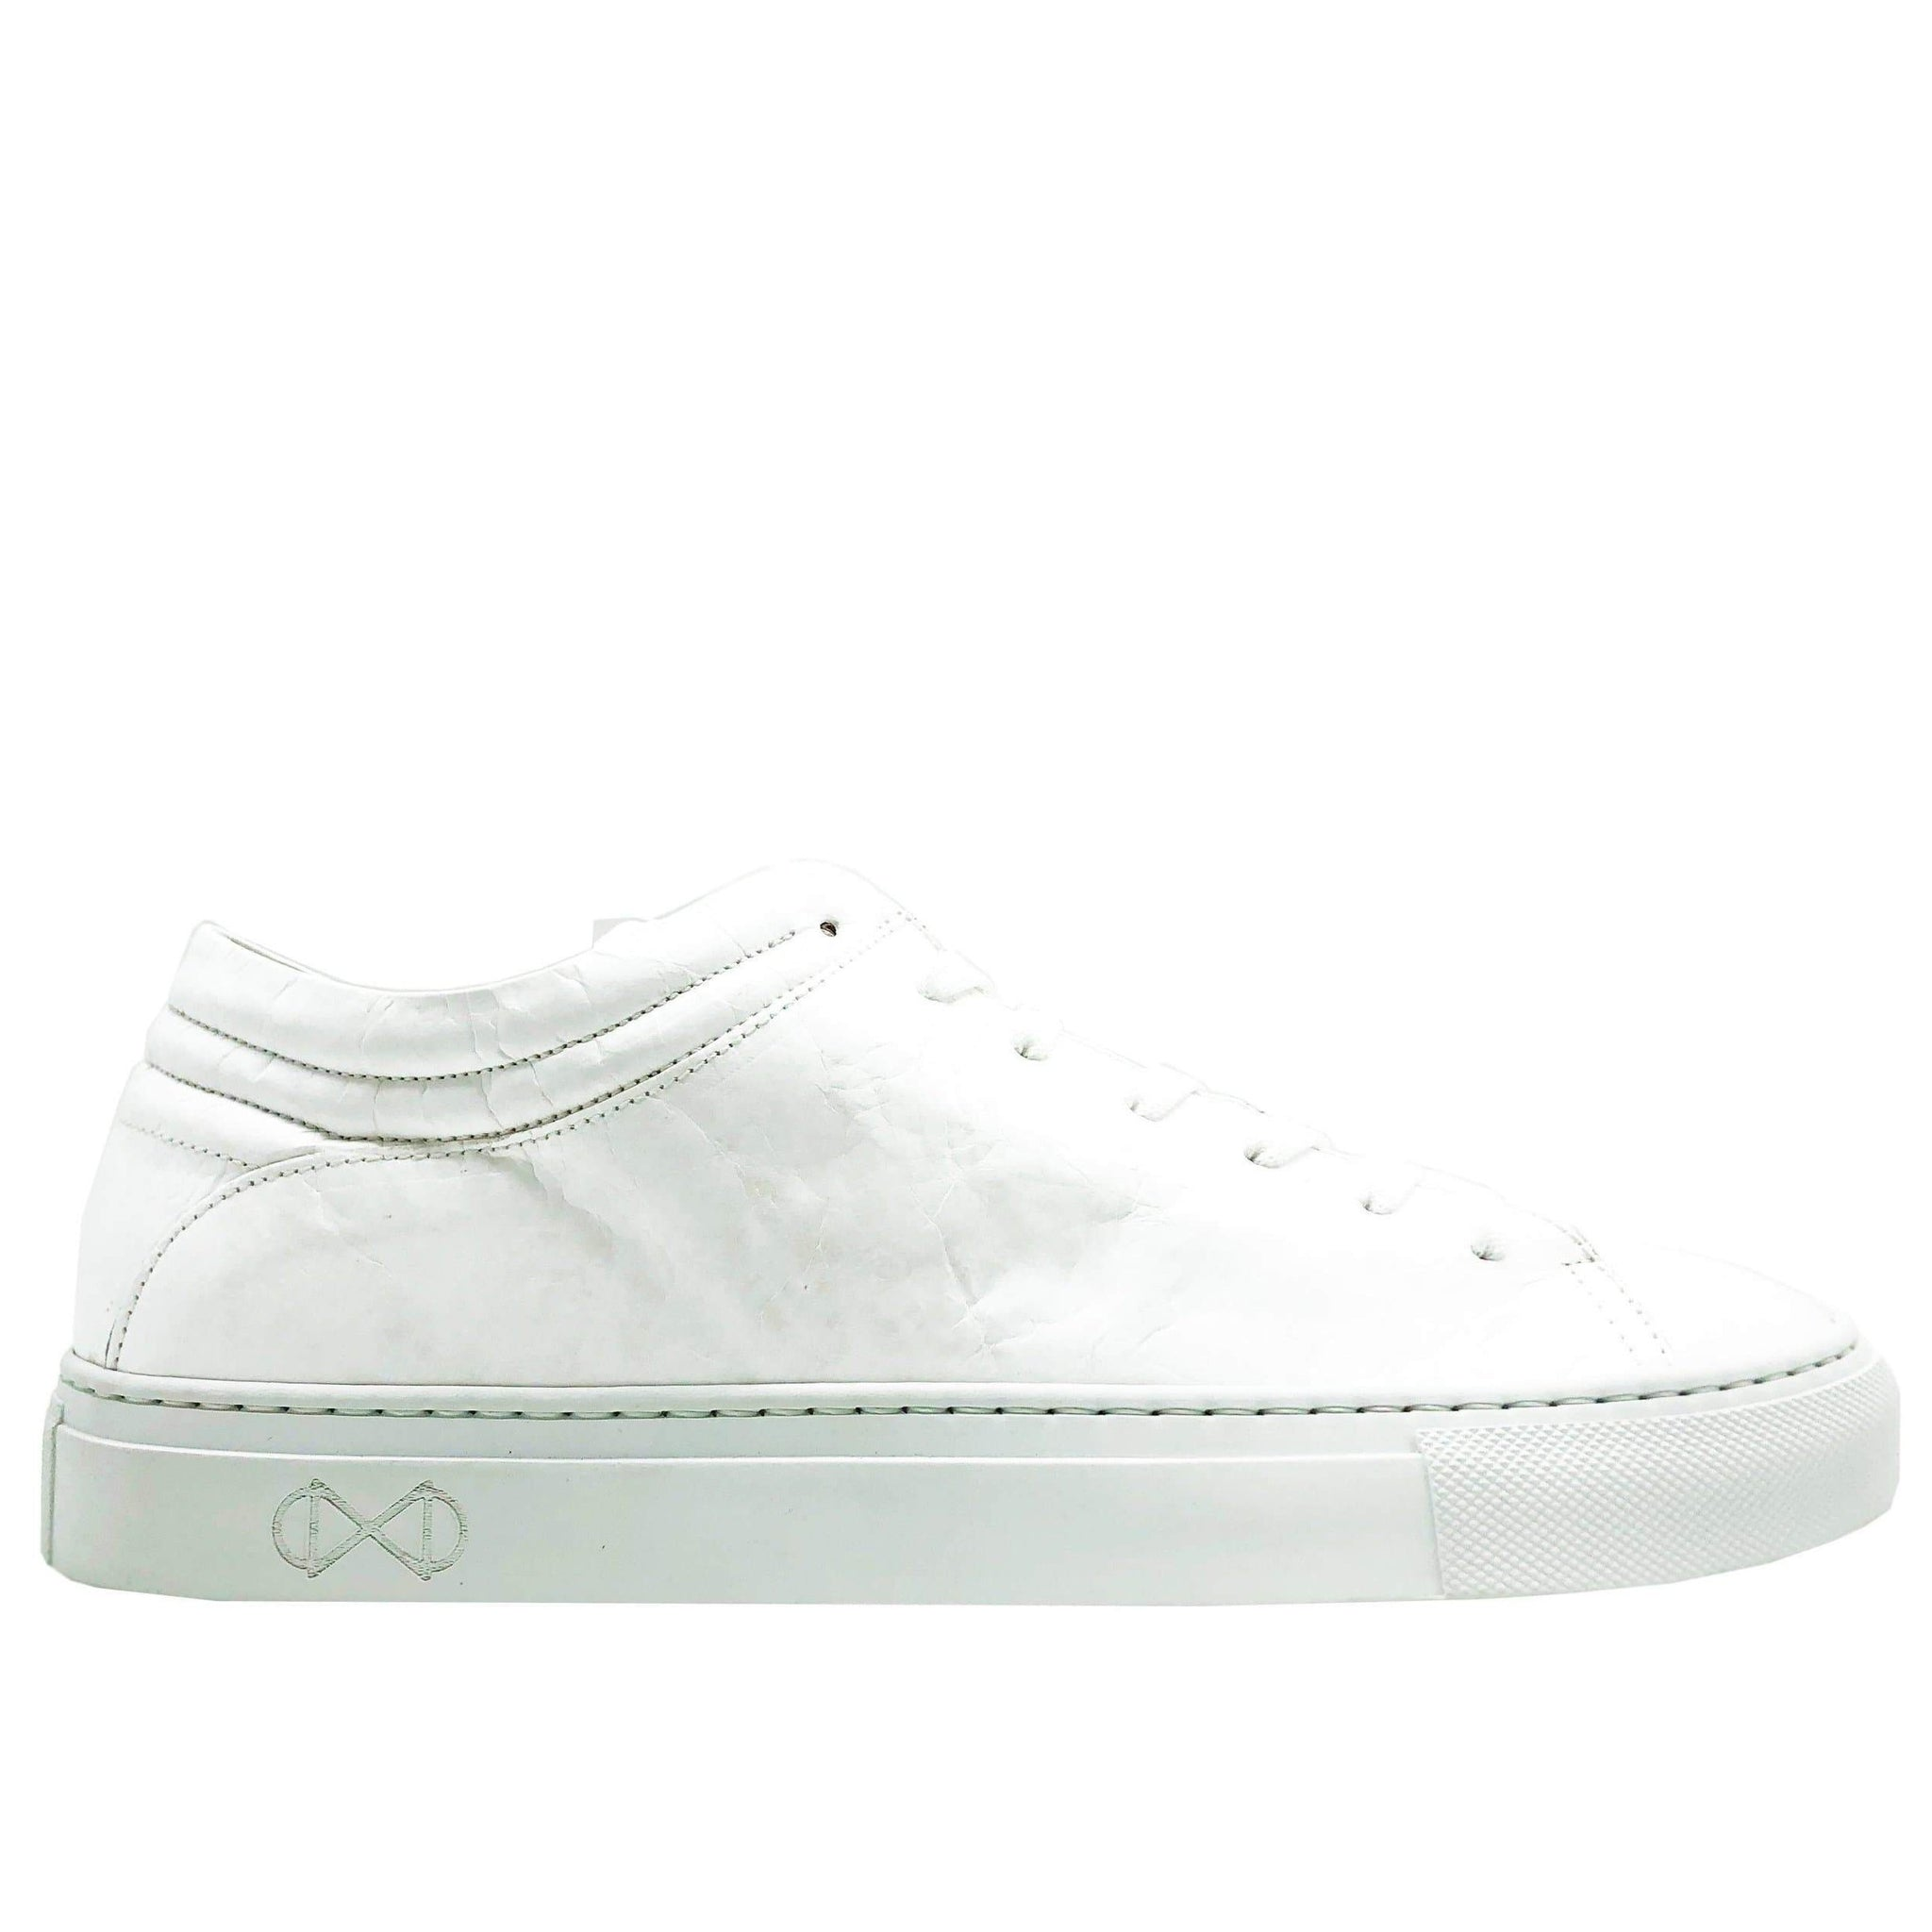 NAT 2 shoe Sleek Low Sneakers. Tyvek® Vegan Paper. sustainable fashion ethical fashion